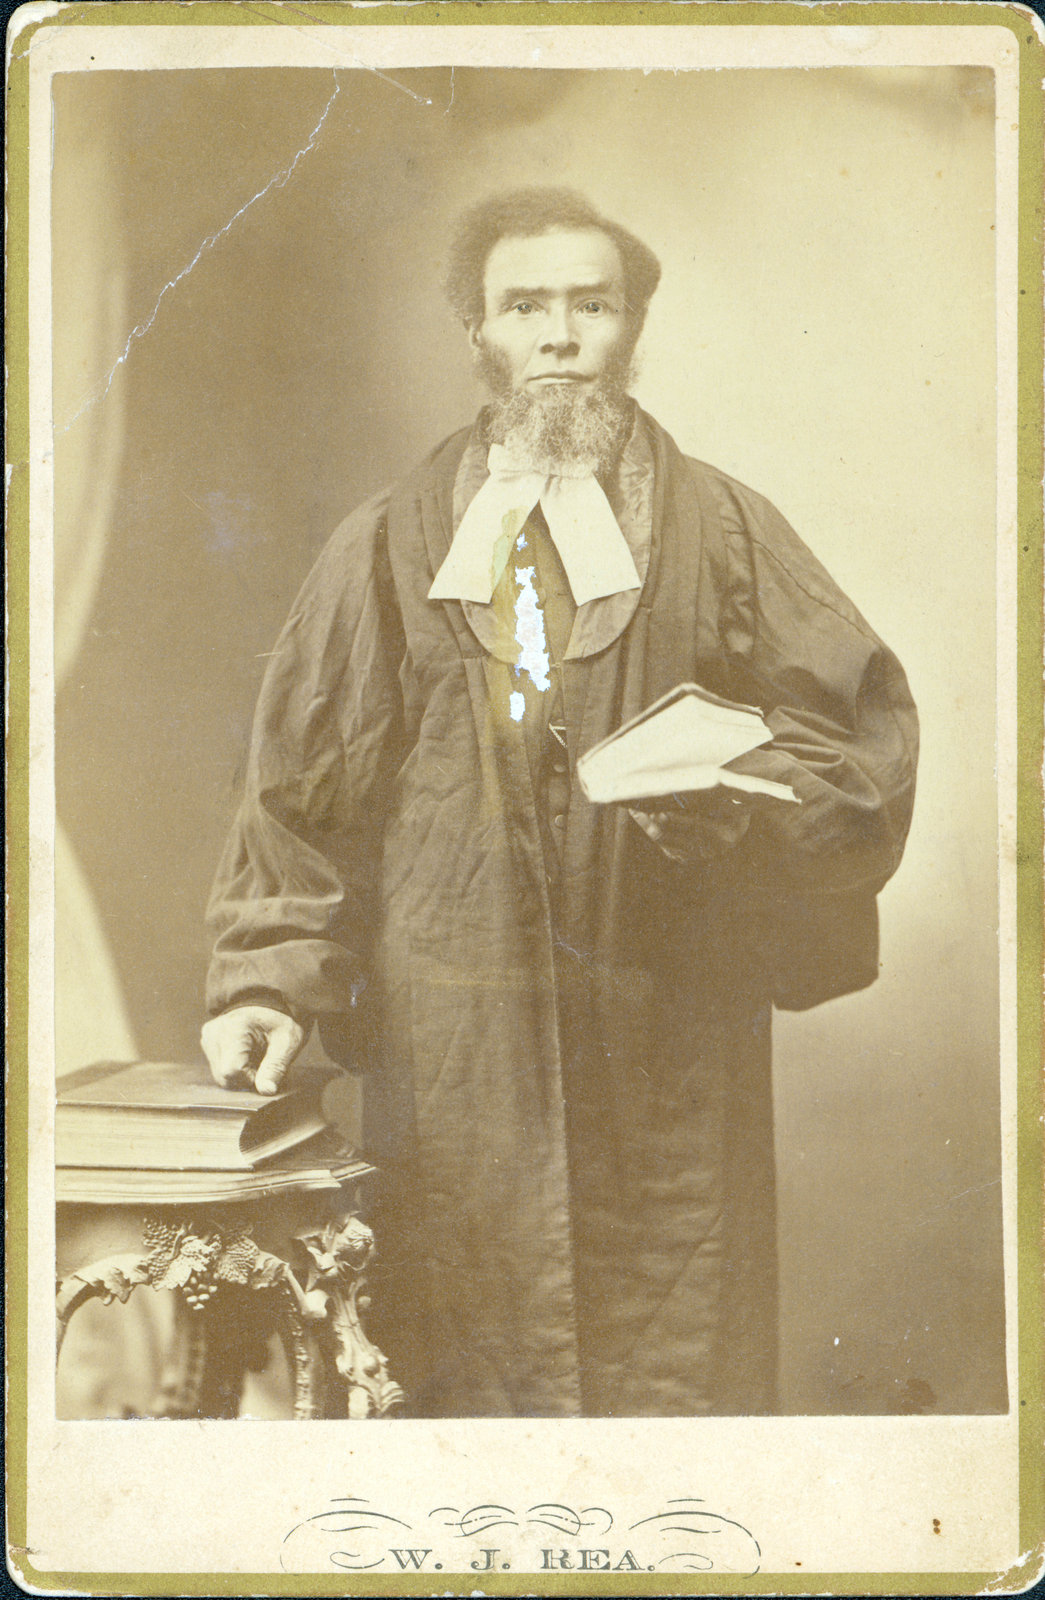 This man appears to be in official dress, possibly of a religious or legal nature. It is likely from the 1870s or 1880s. <br>Courtesy the Brock University James A. Gibson Special Collections & Archives.